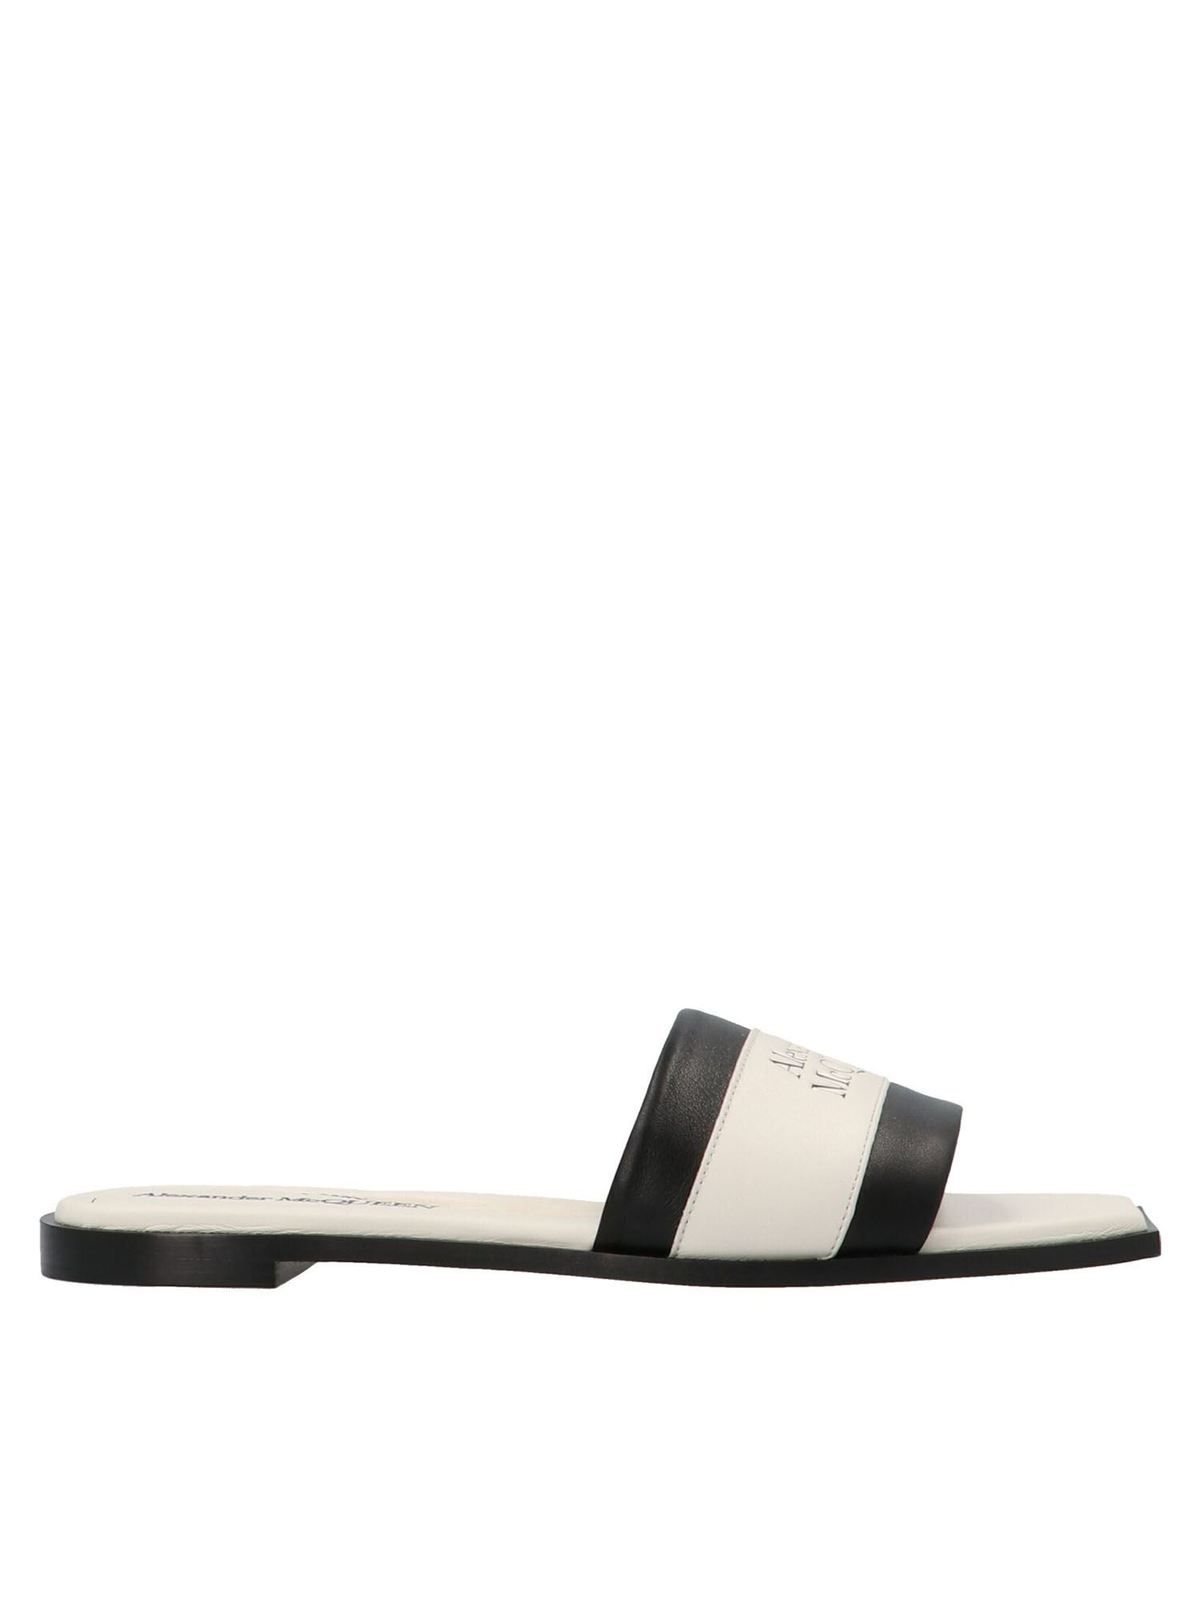 Alexander Mcqueen Logo printed slides in black and white